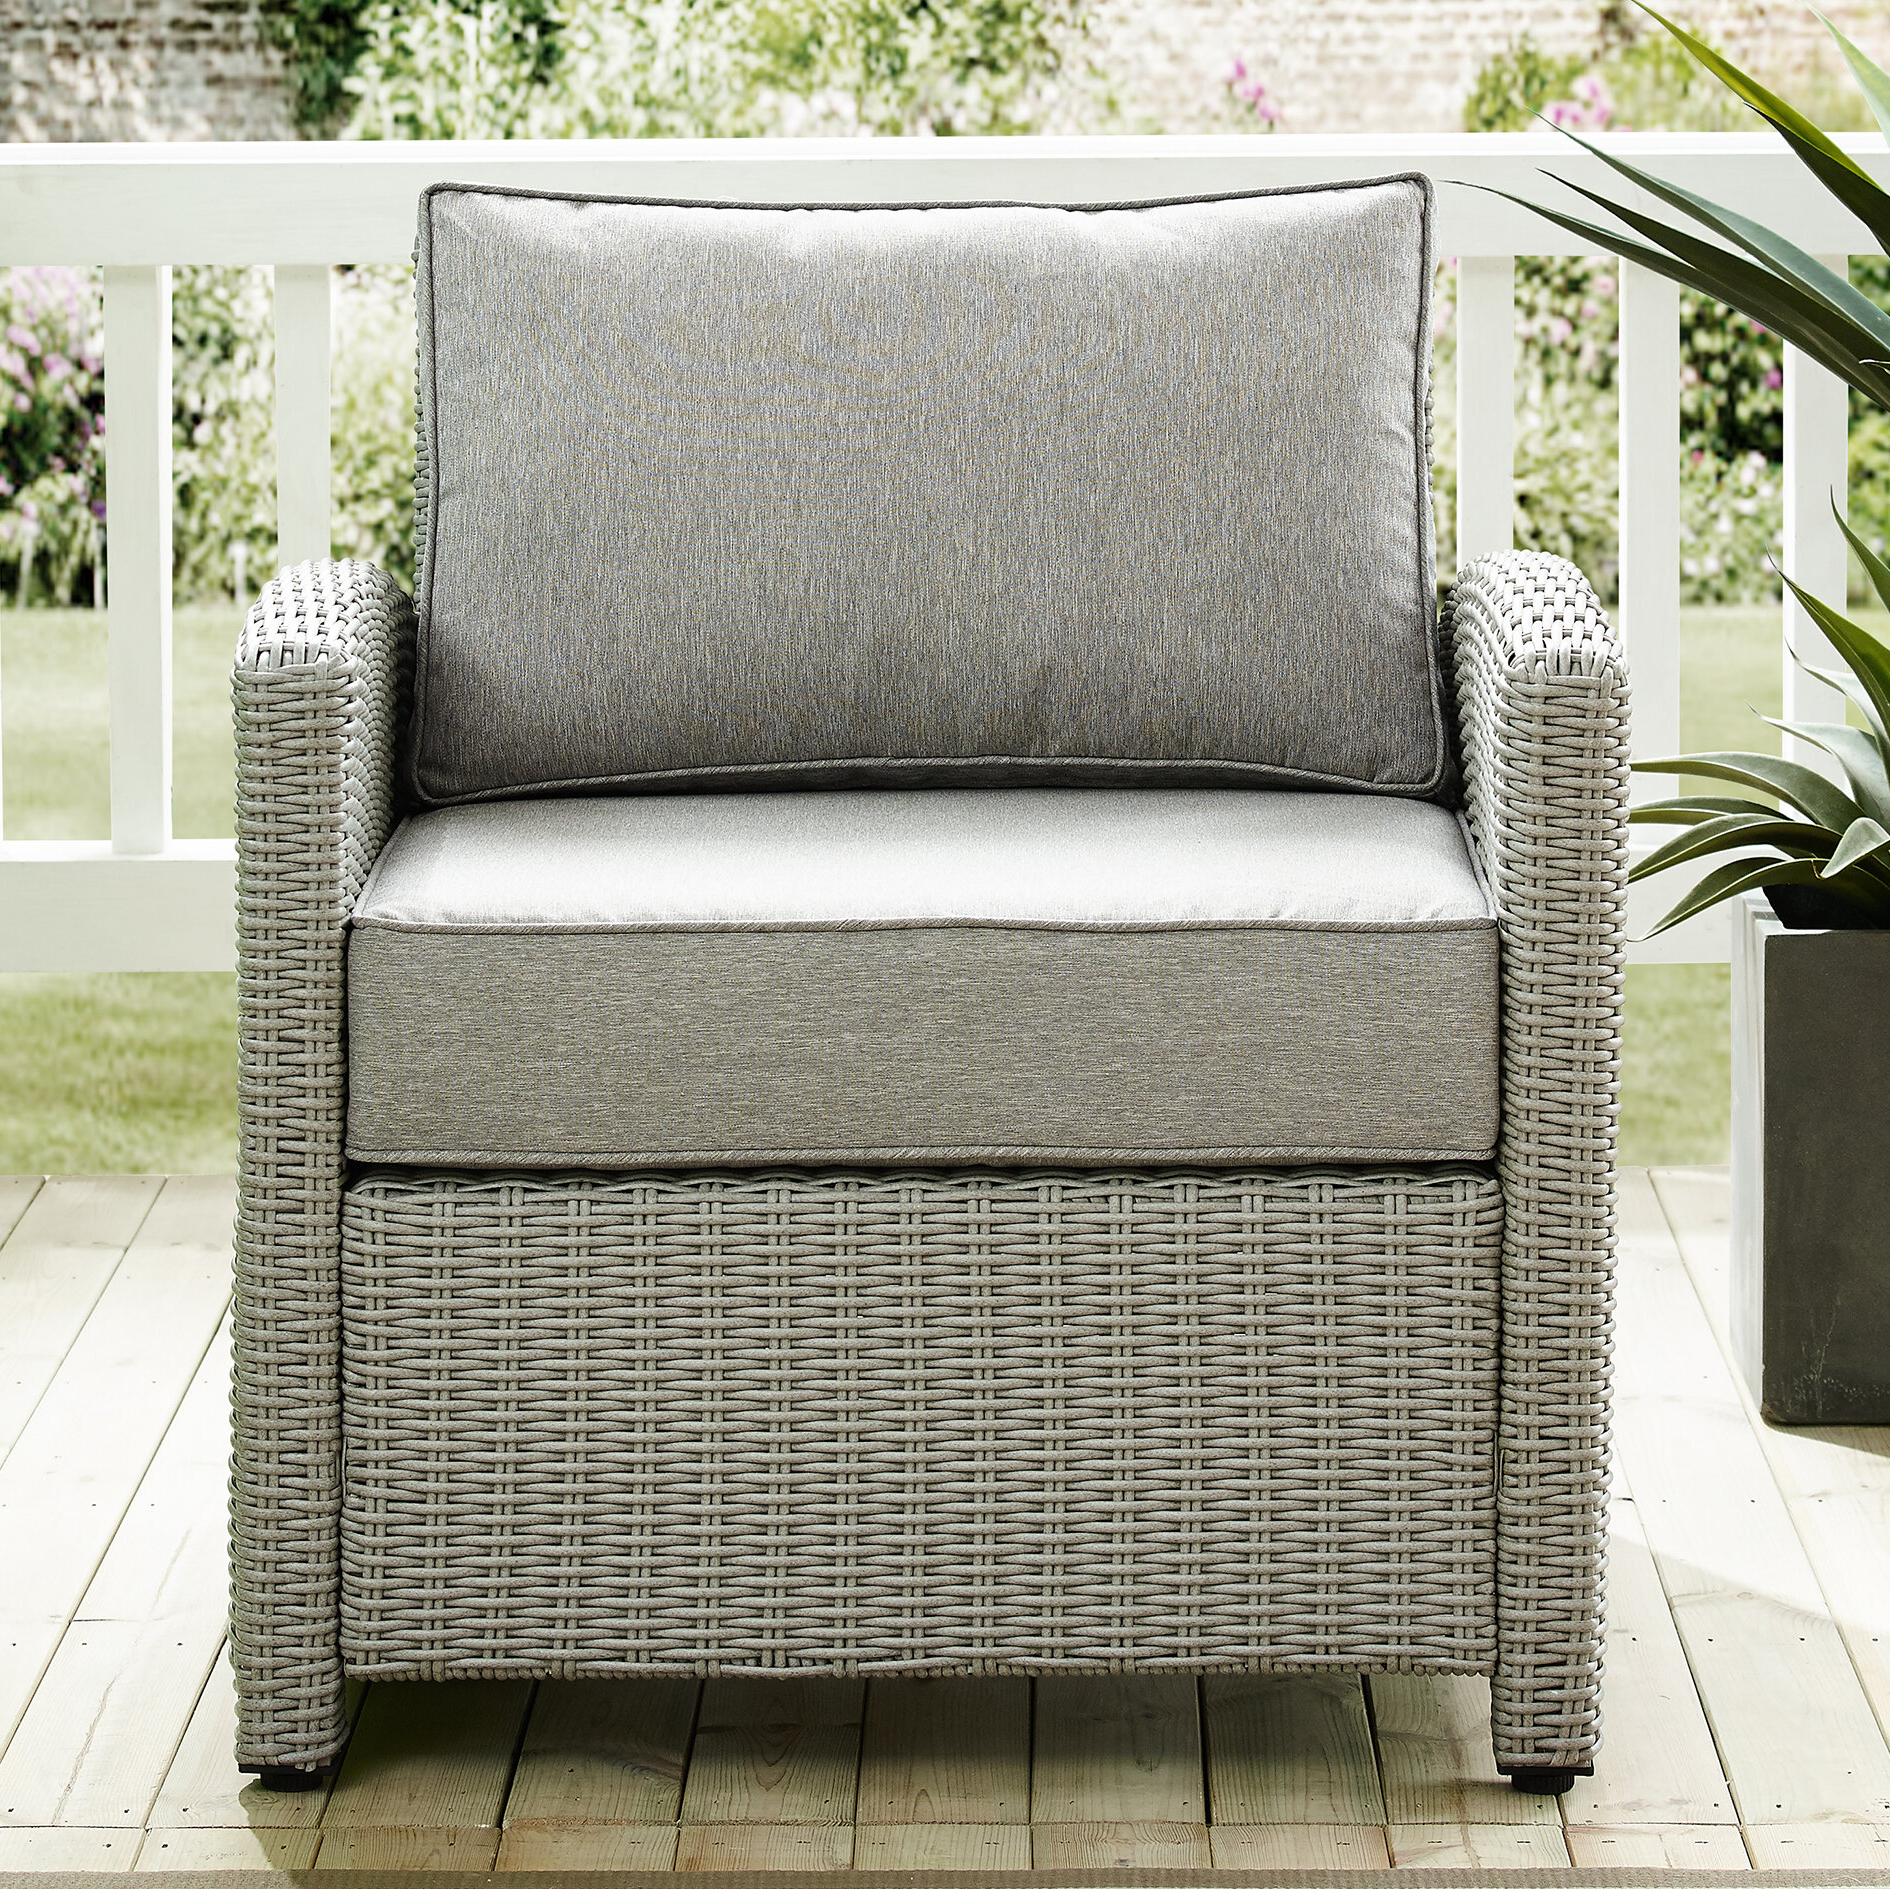 Lawson Patio Sofas With Cushions Pertaining To Most Current Lawson Patio Chair With Cushions (View 16 of 25)